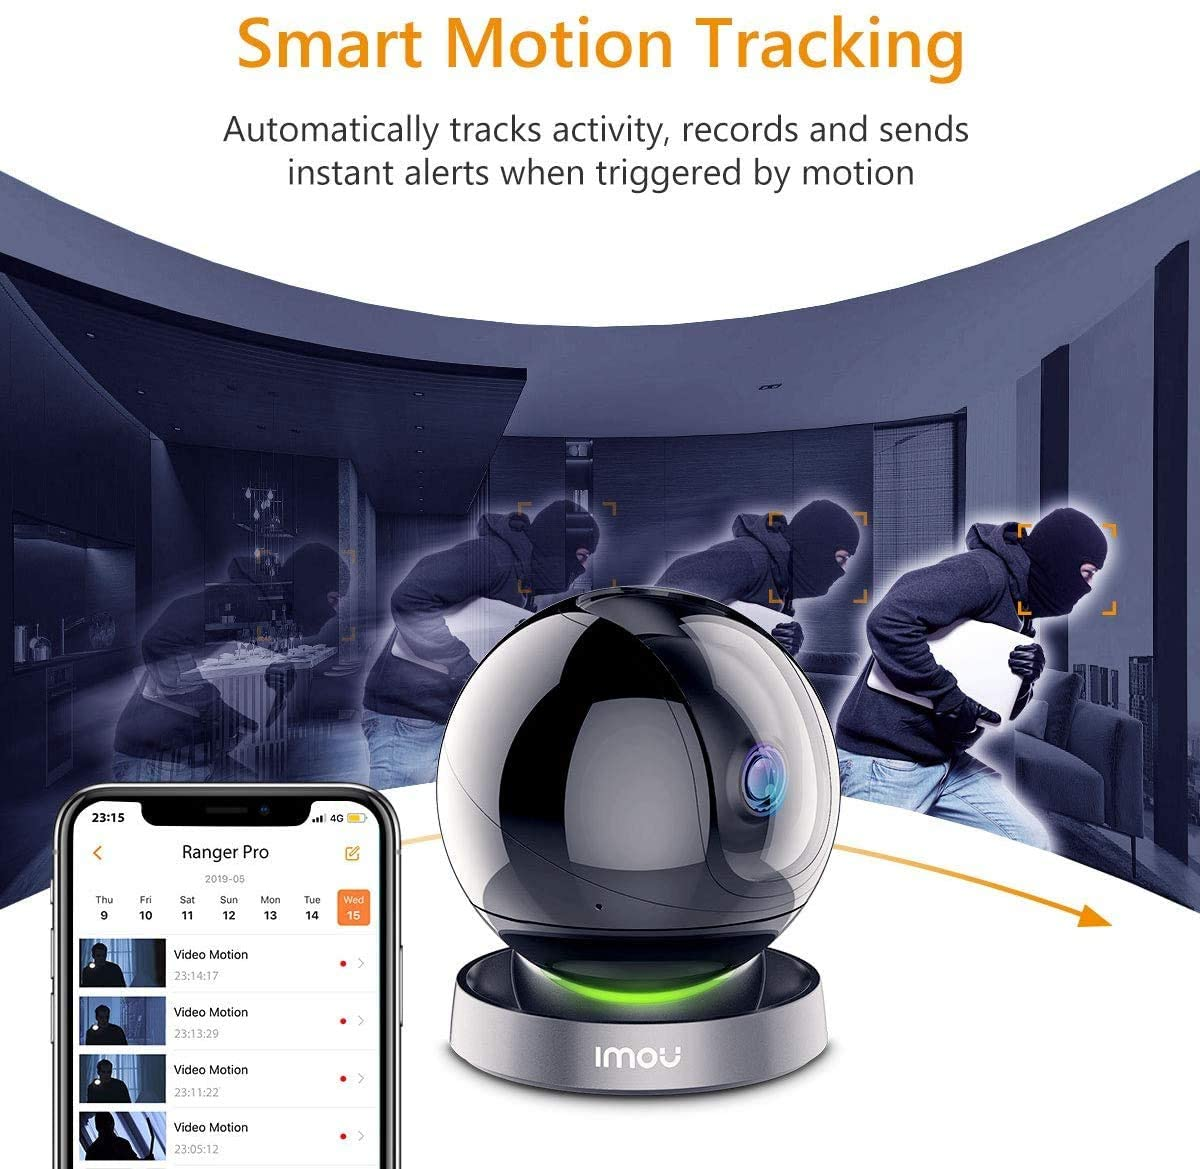 automatic tracking of objects